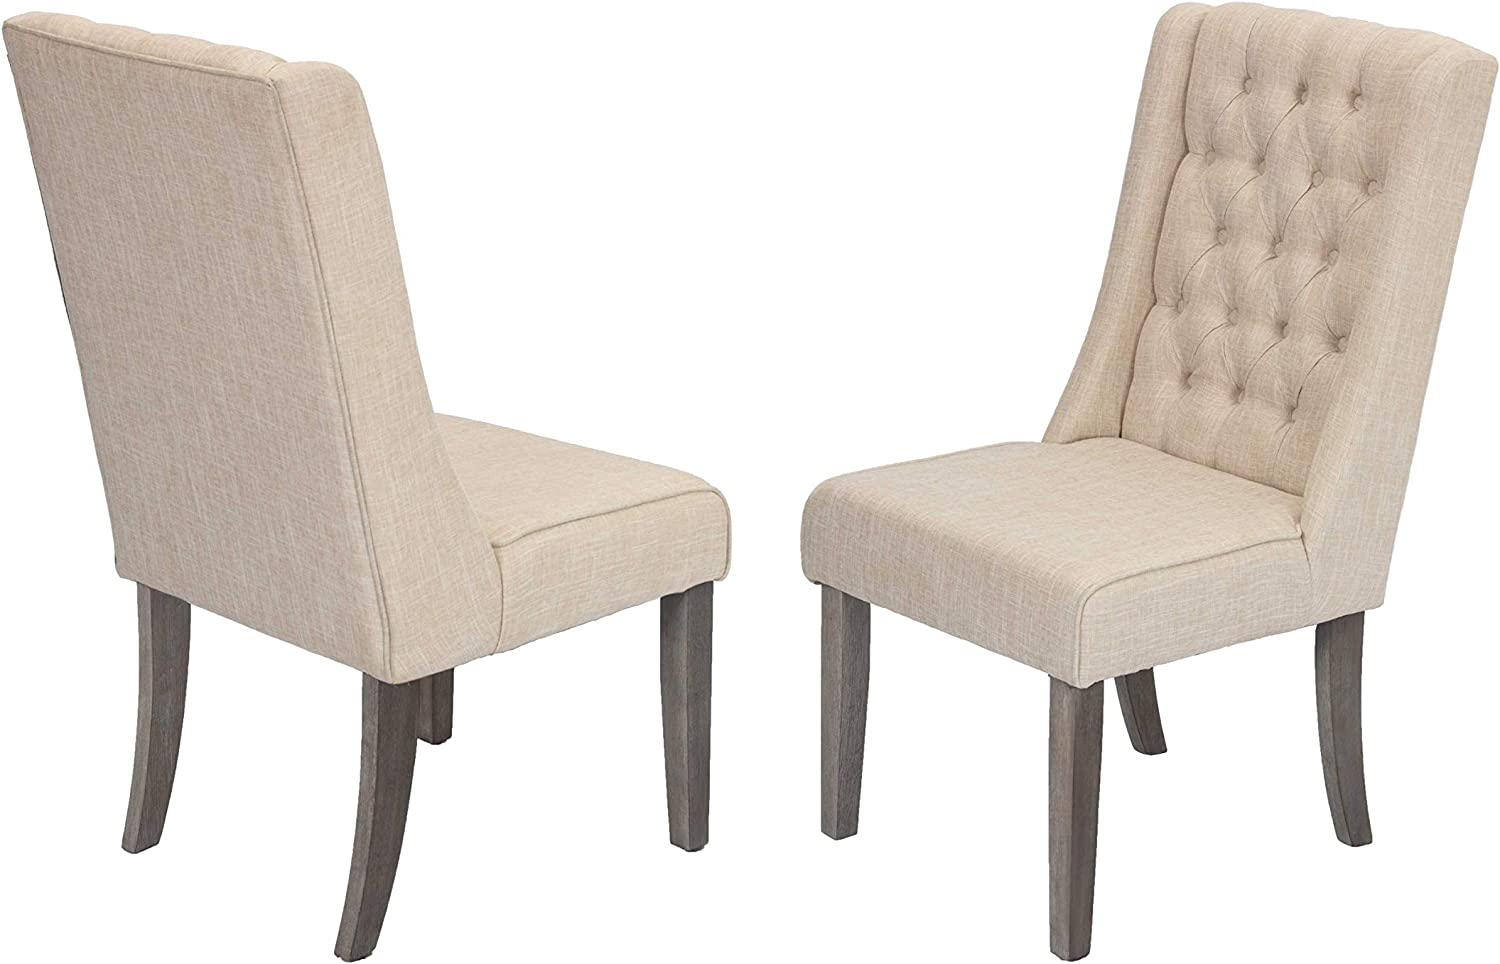 Best Quality Furniture 6 D25-SC2 Dining Chairs (Set of 2) Beige